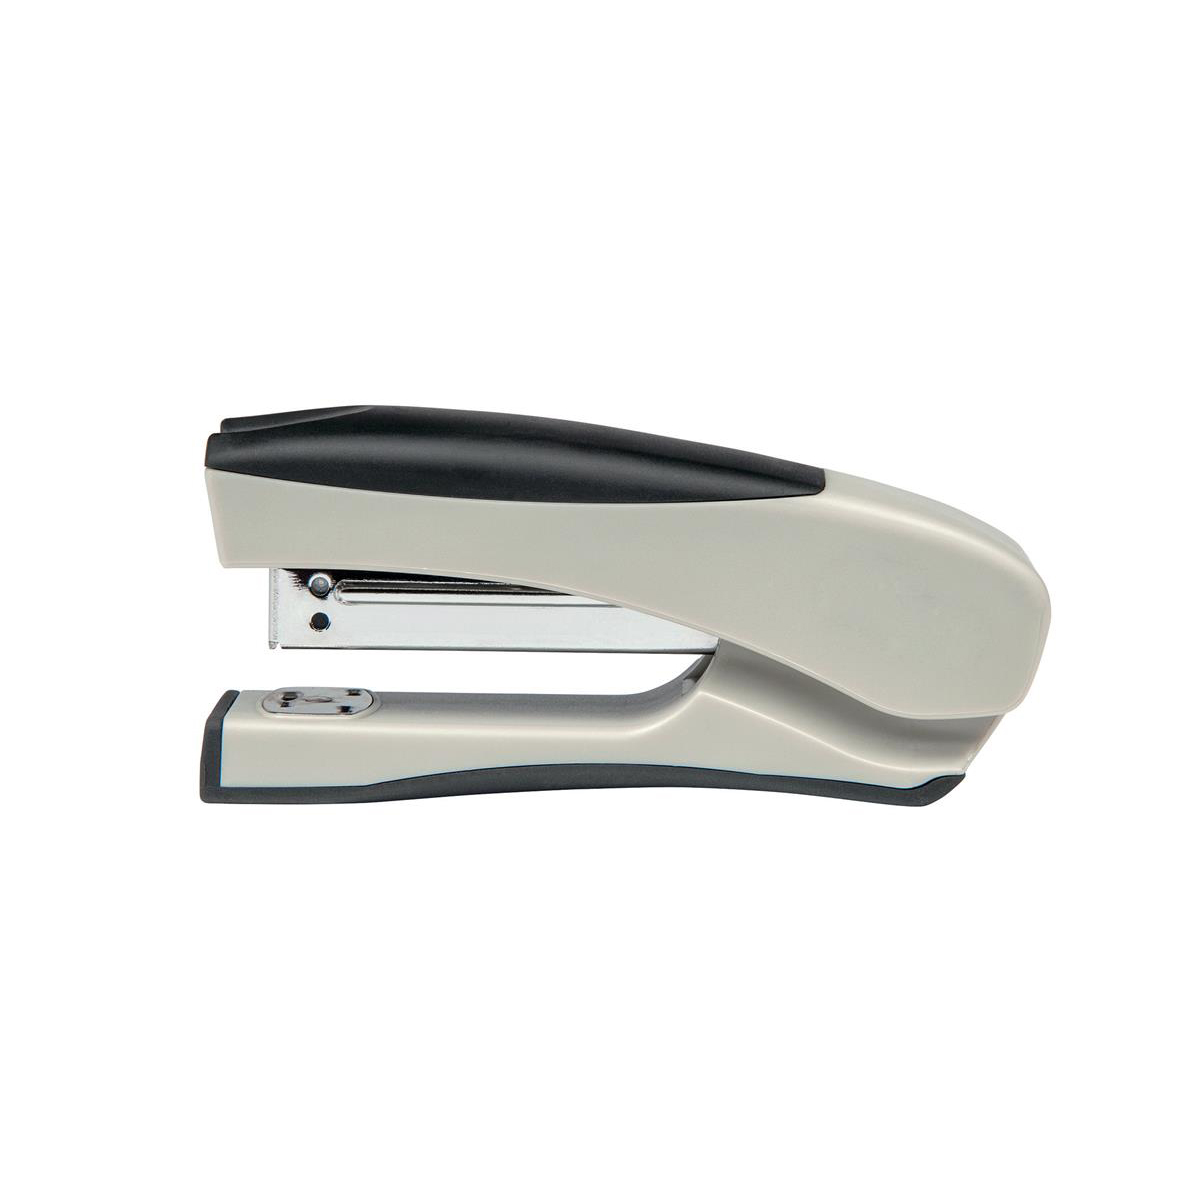 Image for 5 Star Office Half Strip Stand Up Stapler 20 Sheet Capacity Takes 26/6 and 24/6 Staples Black/Grey